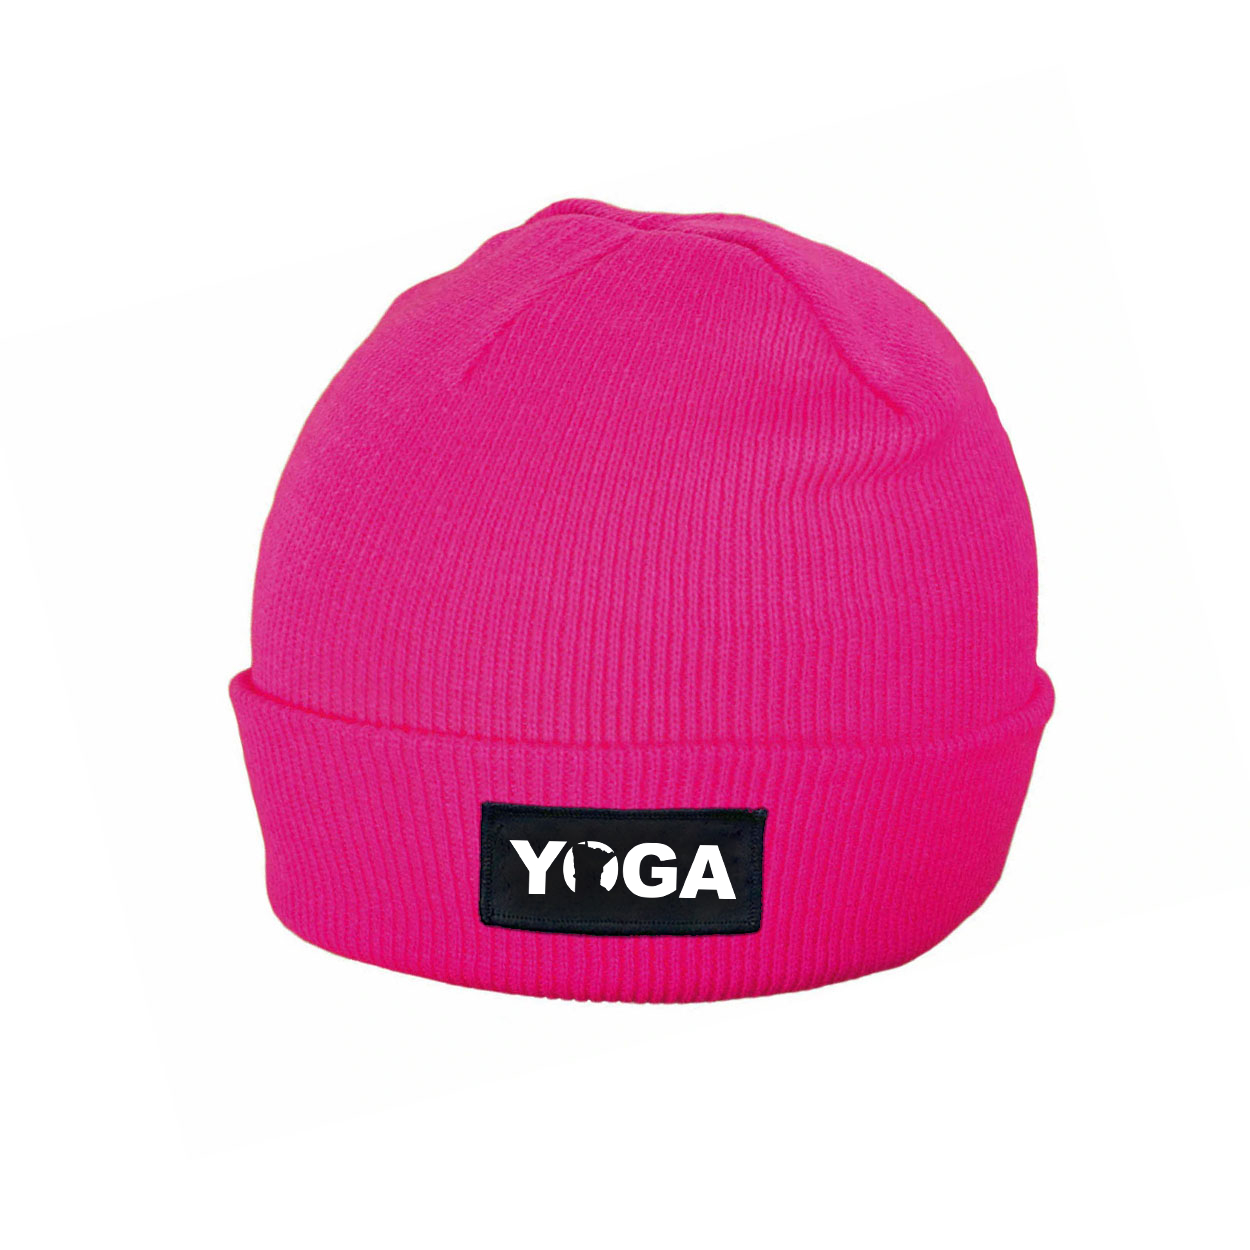 Yoga Minnesota Night Out Woven Patch Roll Up Skully Beanie Heather Fuchsia (White Logo)